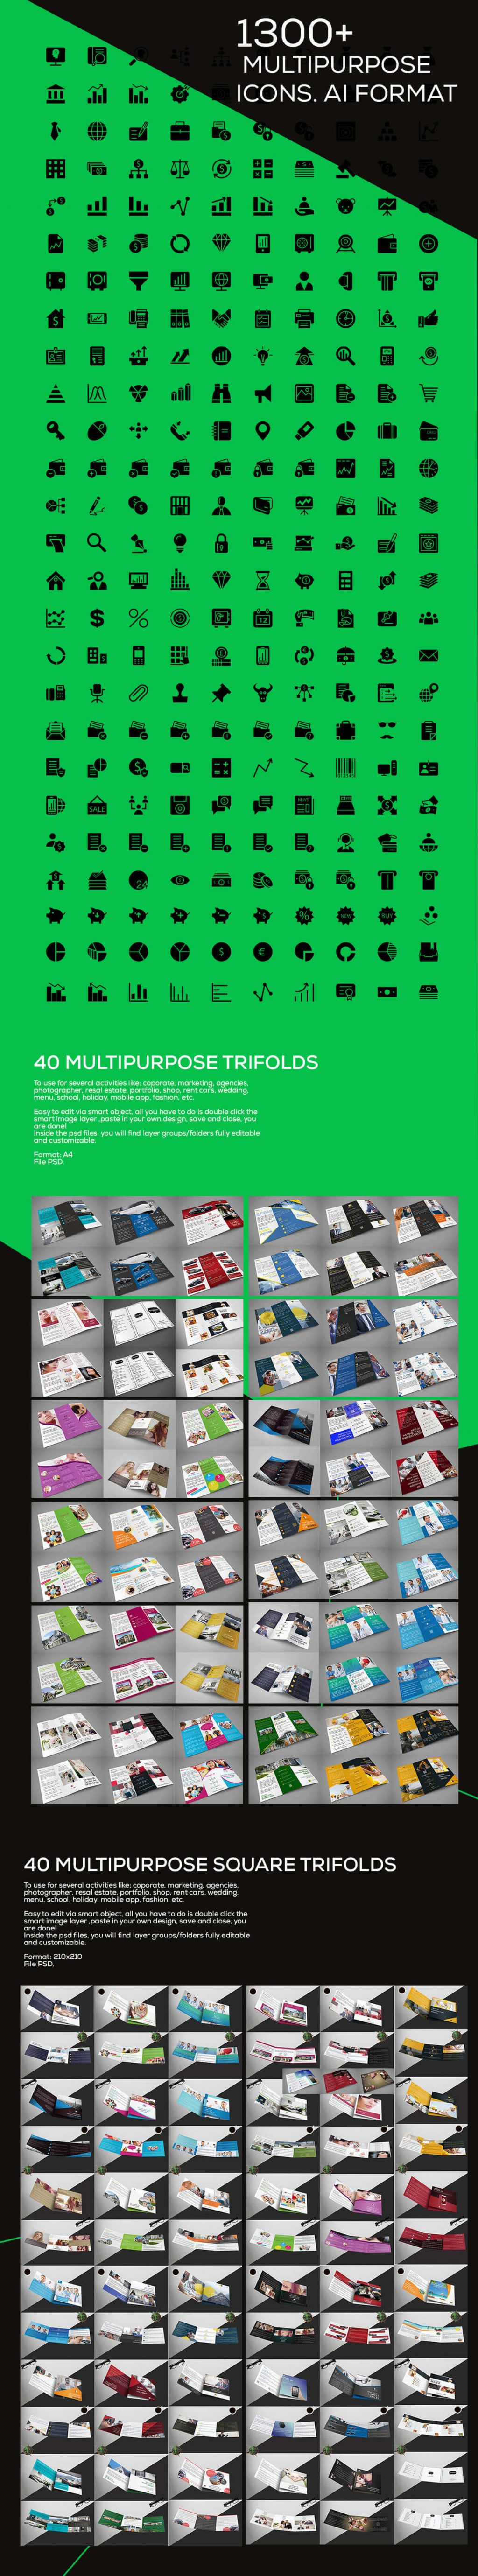 1500 Print and Web Templates - 1500 print templates bundle nifty graphic bypeople deals 4